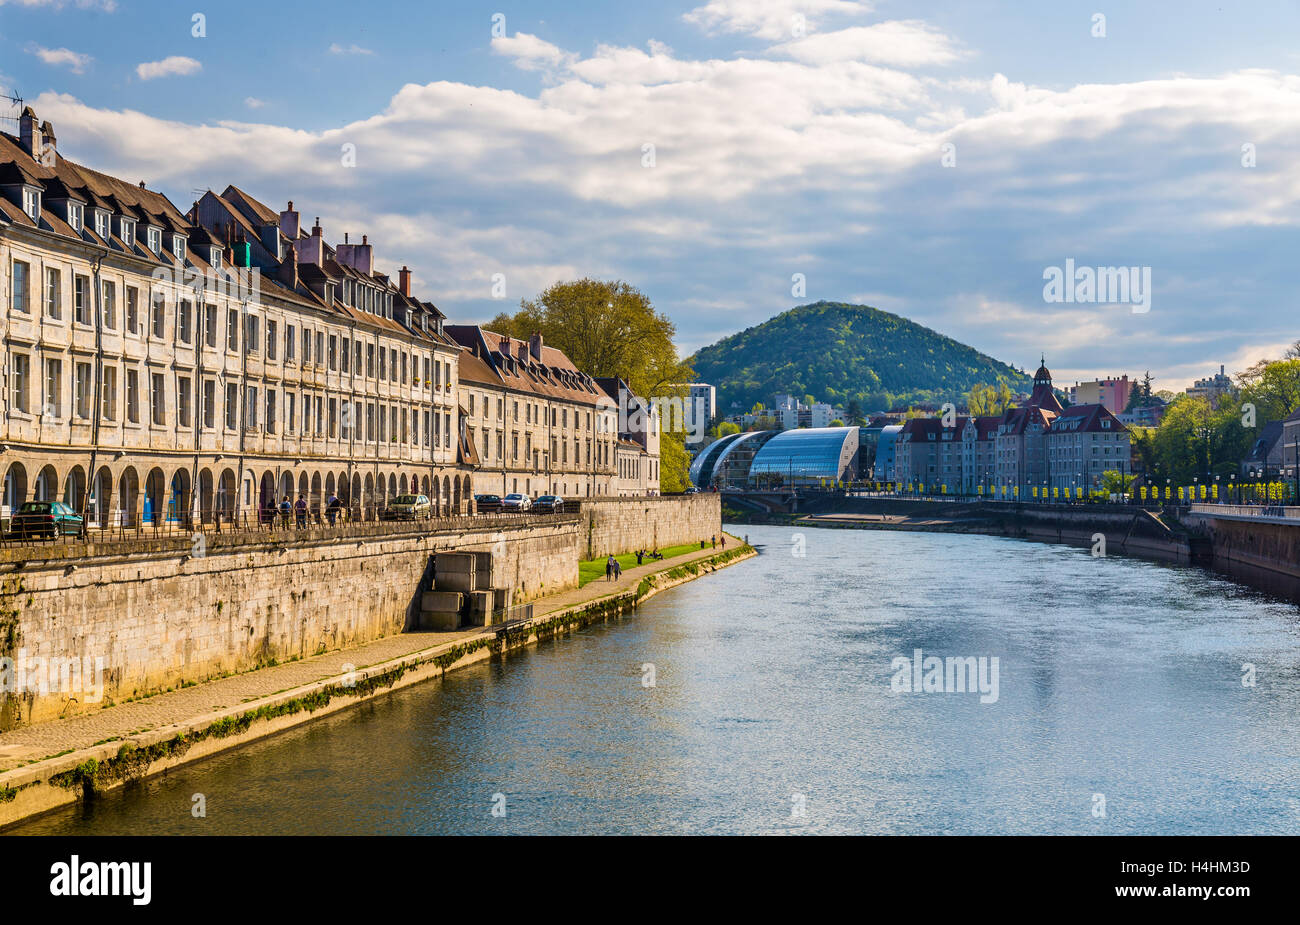 View of Besancon over the Doubs River - France - Stock Image